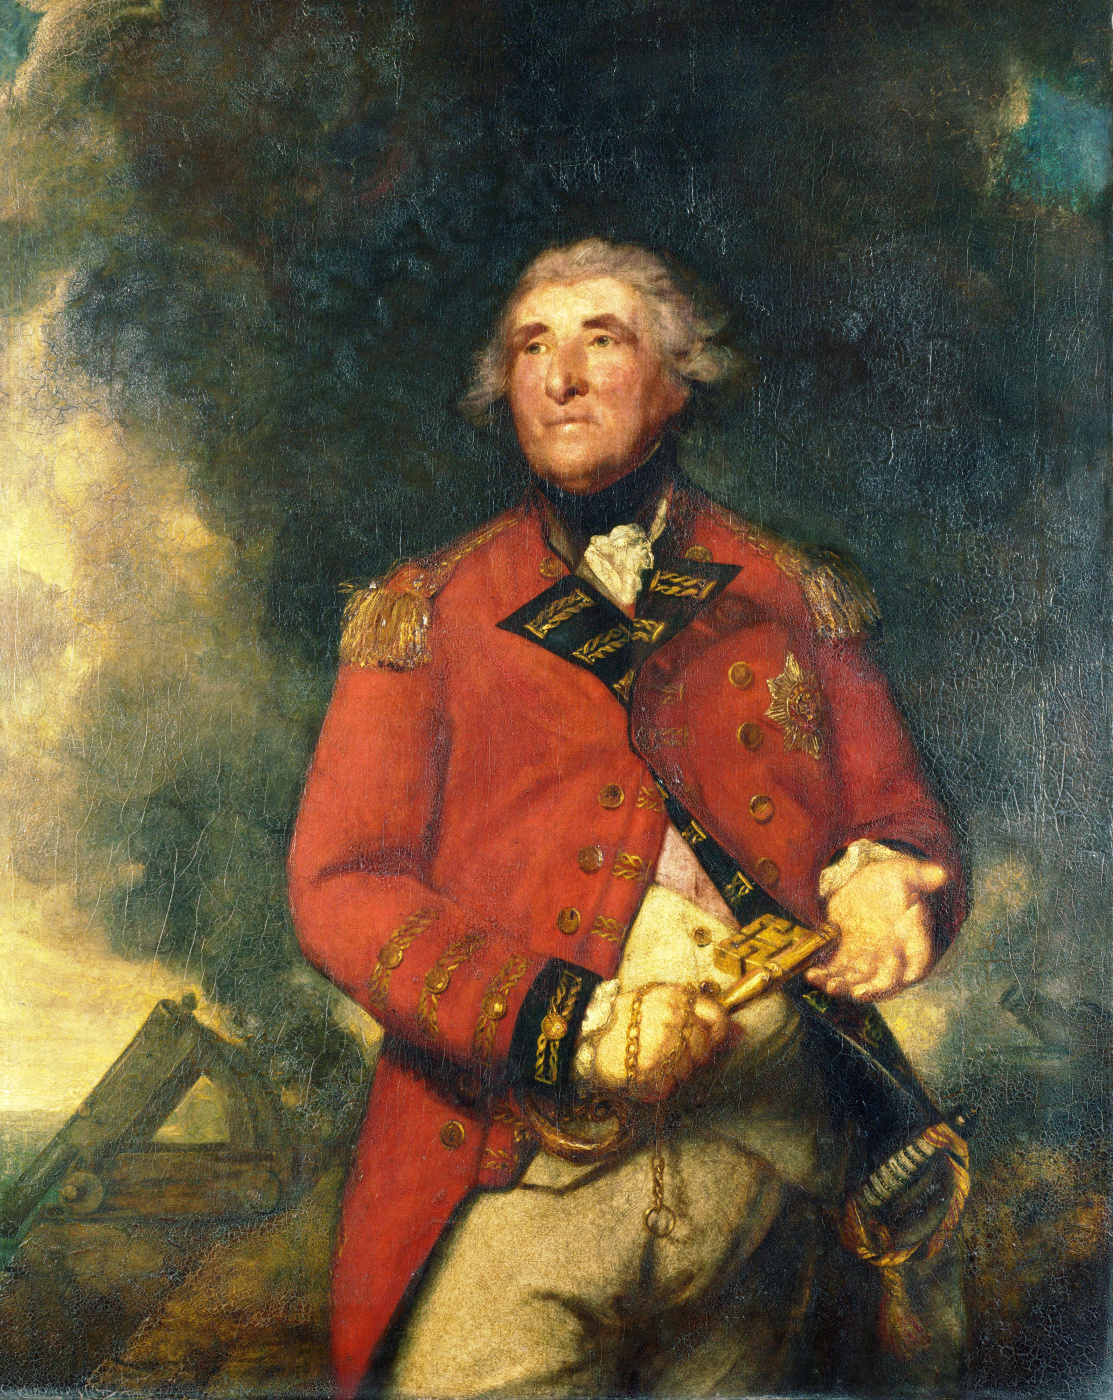 Joshua Reynolds. Portrait of Admiral Lord Heathfield, Governor of Gibraltar